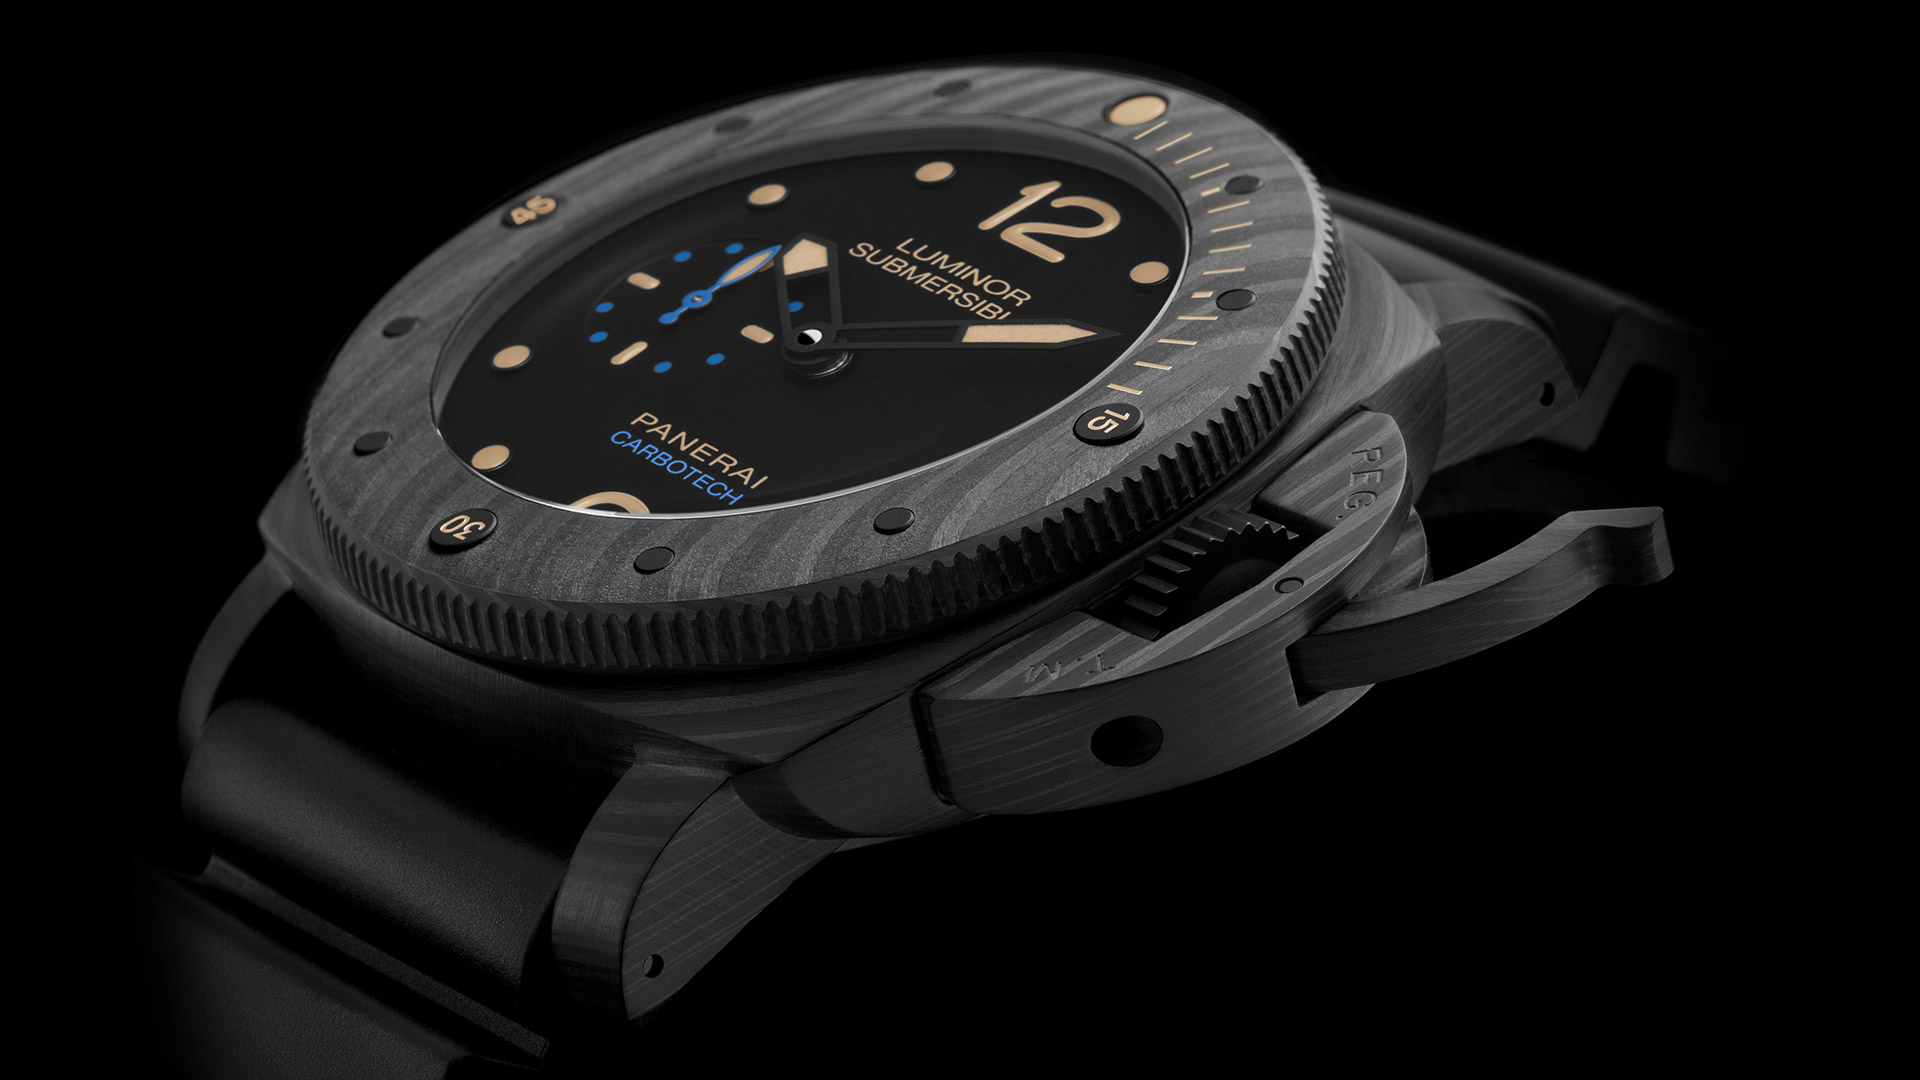 PANERAI LUMINOR SUBMERSIBLE 1950 CARBOTECH™ - 3 DAYS AUTOMATIC 47 mm - PAM00616